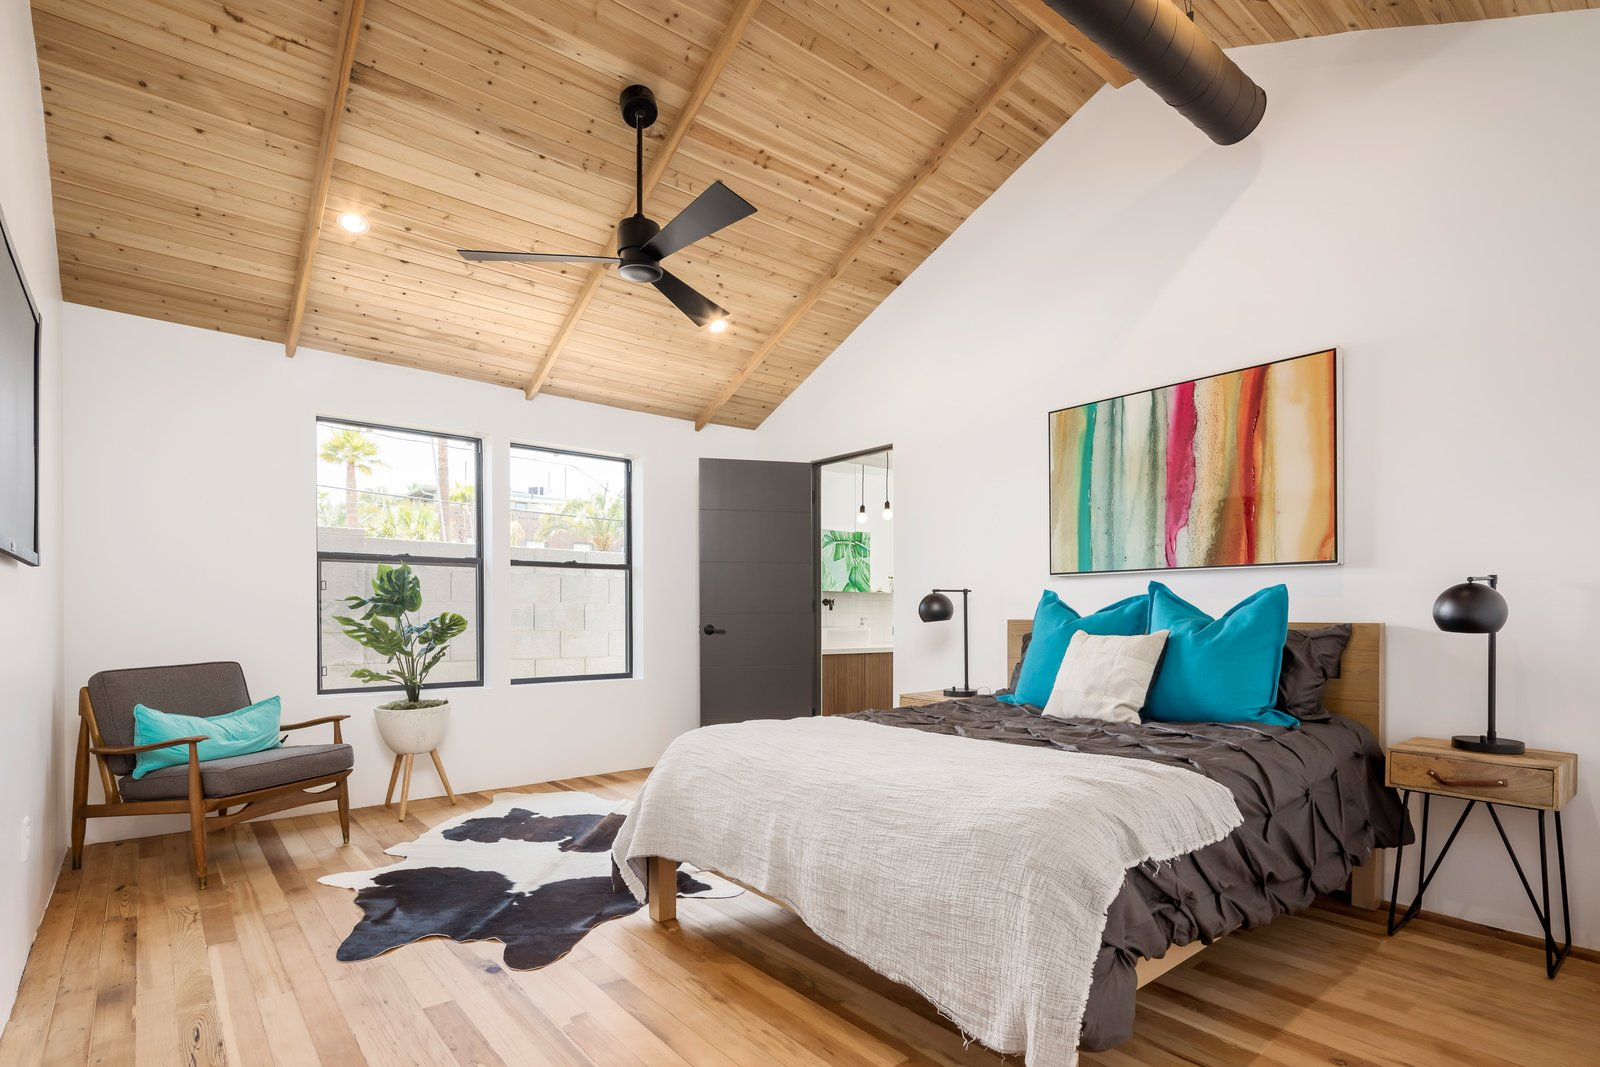 Bedroom, Medium Hardwood Floor, Lamps, Bed, Night Stands, Chair, Ceiling Lighting, and Recessed Lighting  Photo 7 of 13 in In Arizona, a Modern Cube and Tumbledown 1930s Shack Make an Unlikely Couple